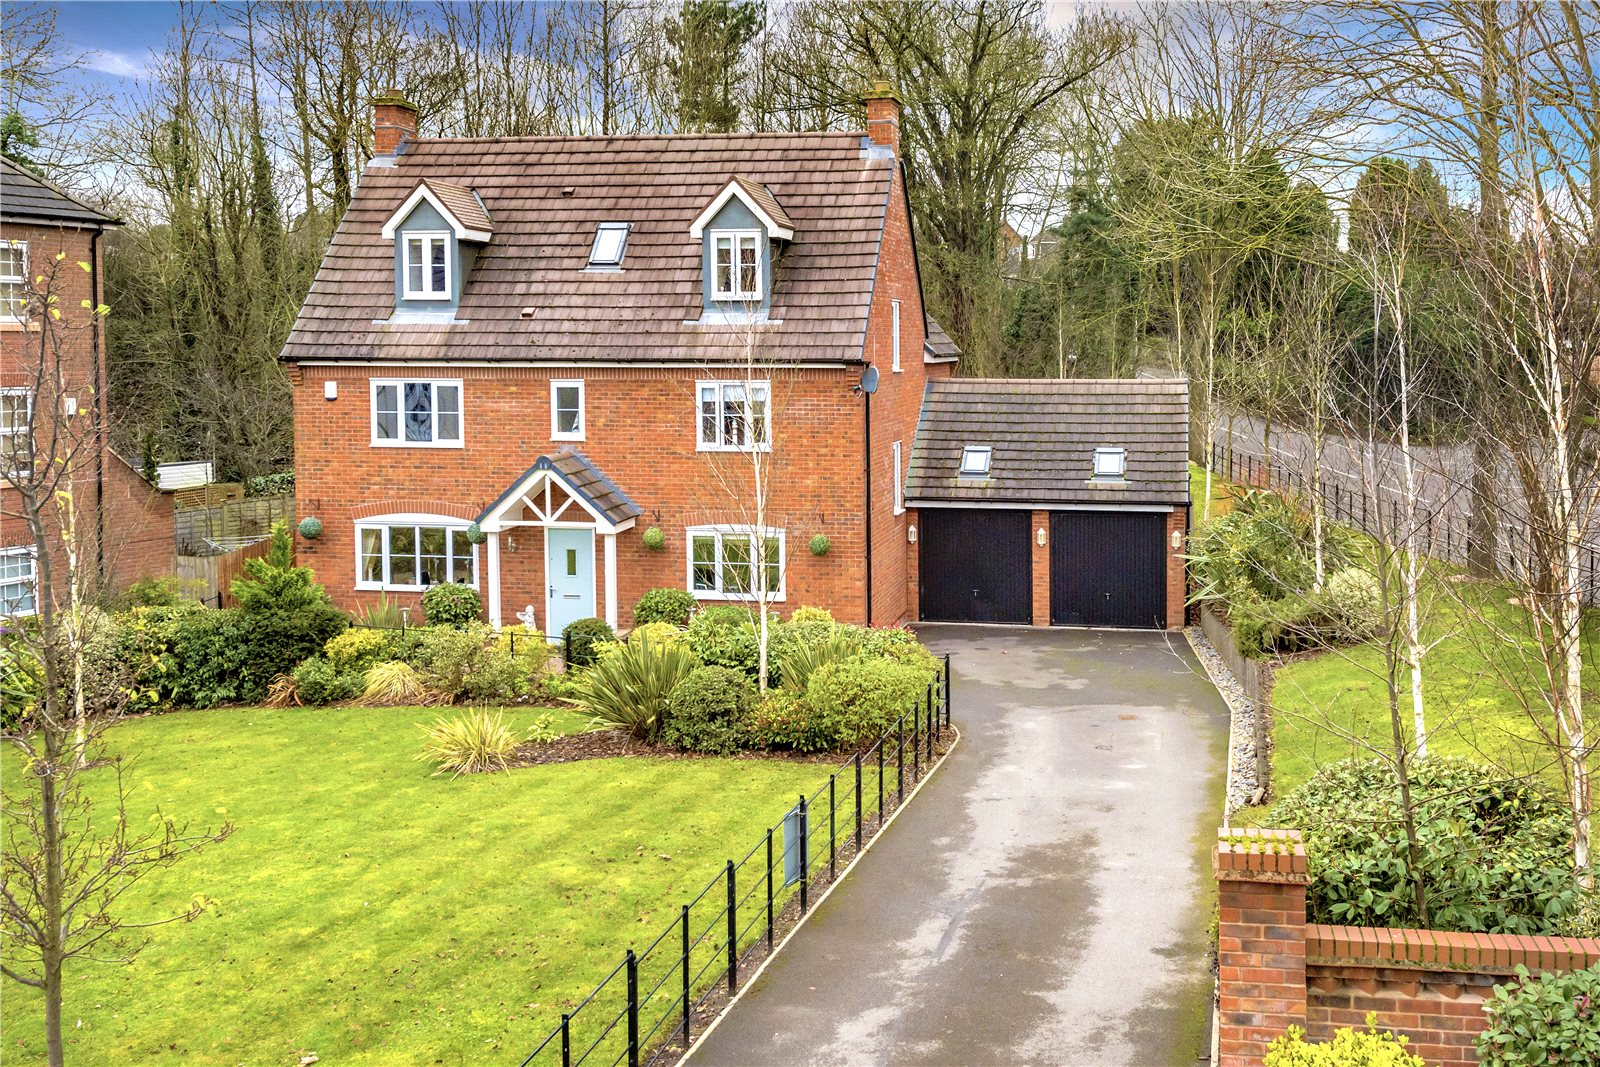 5 Bedrooms Detached House for sale in 1 The Dingle, Doseley, Telford, Shropshire, TF4